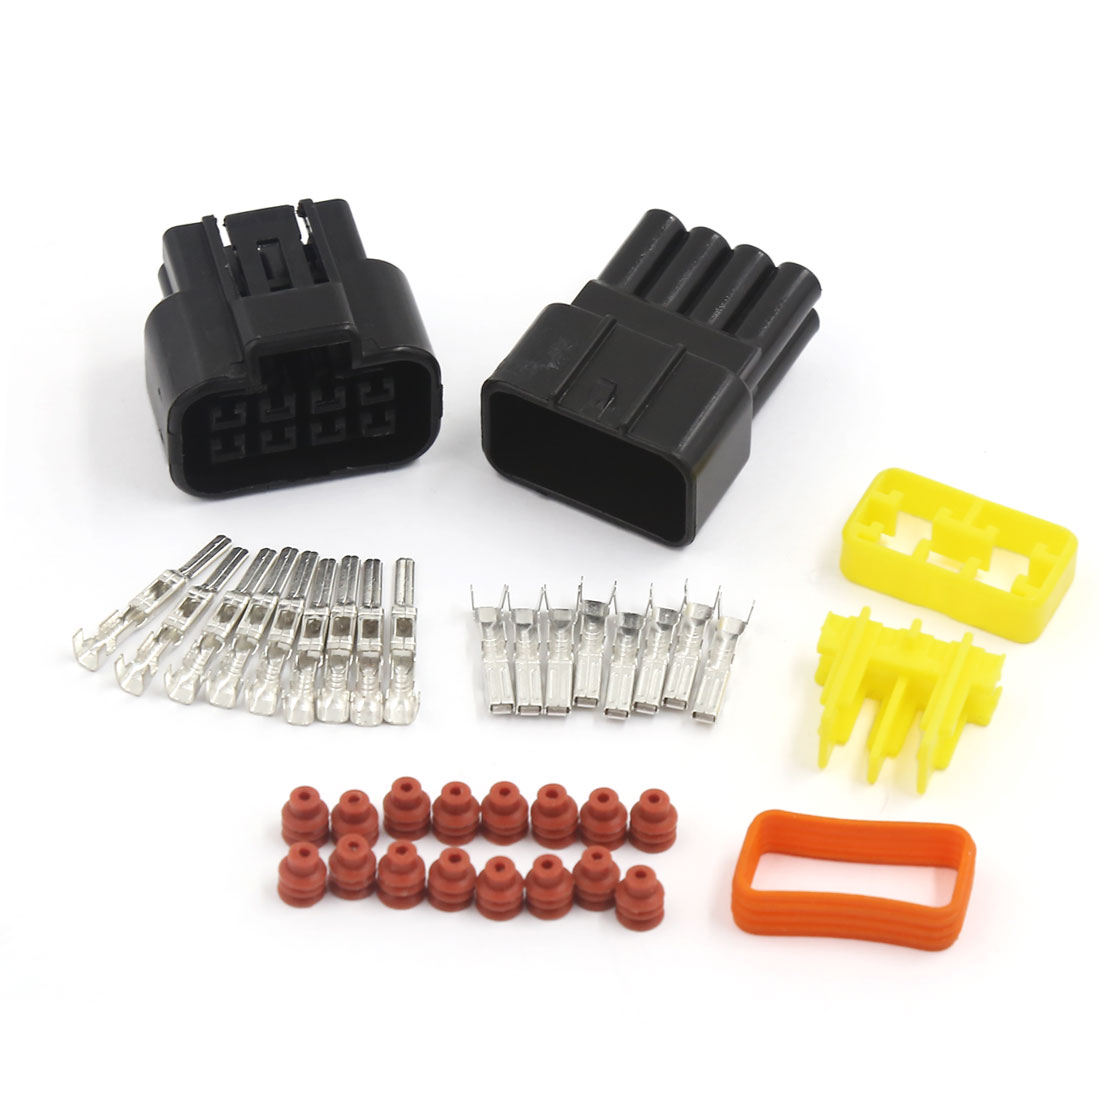 Unique Bargains1 Kit 8 Pin Way Waterproof 2.3mm Wire Connector Socket Car Sealed Electrical Set